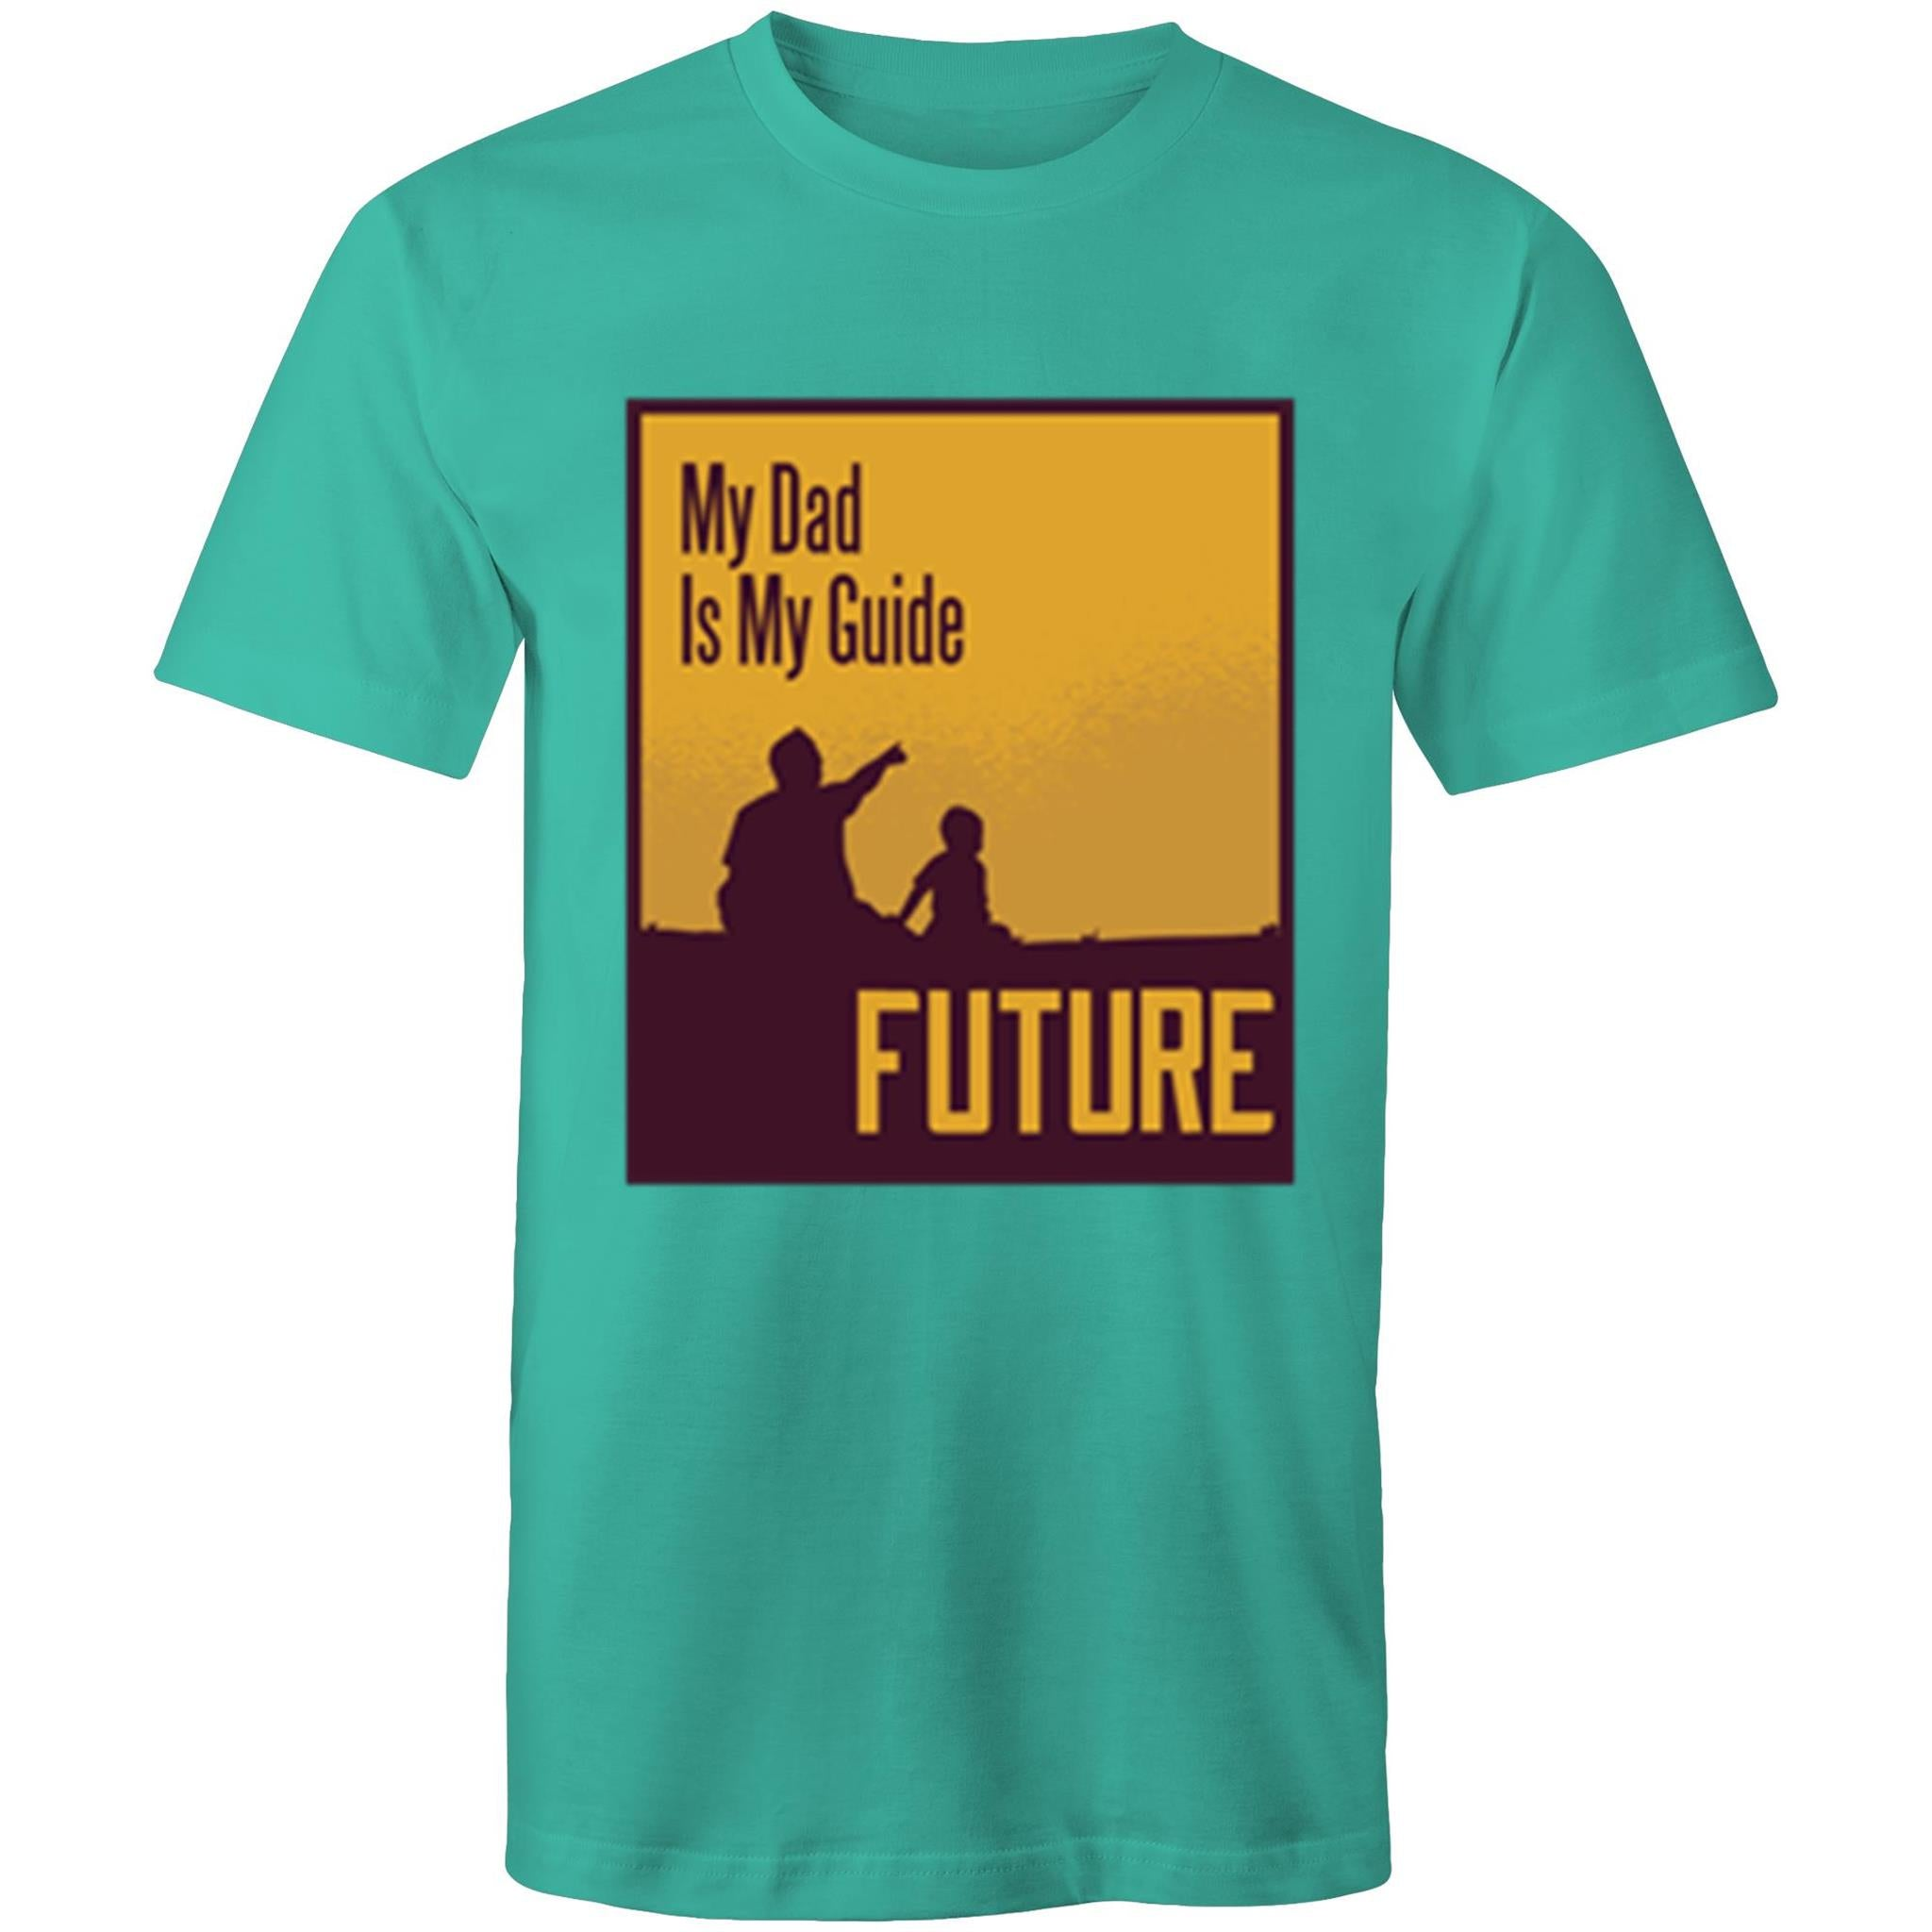 My dad is my guide (Mens S - 5XL)